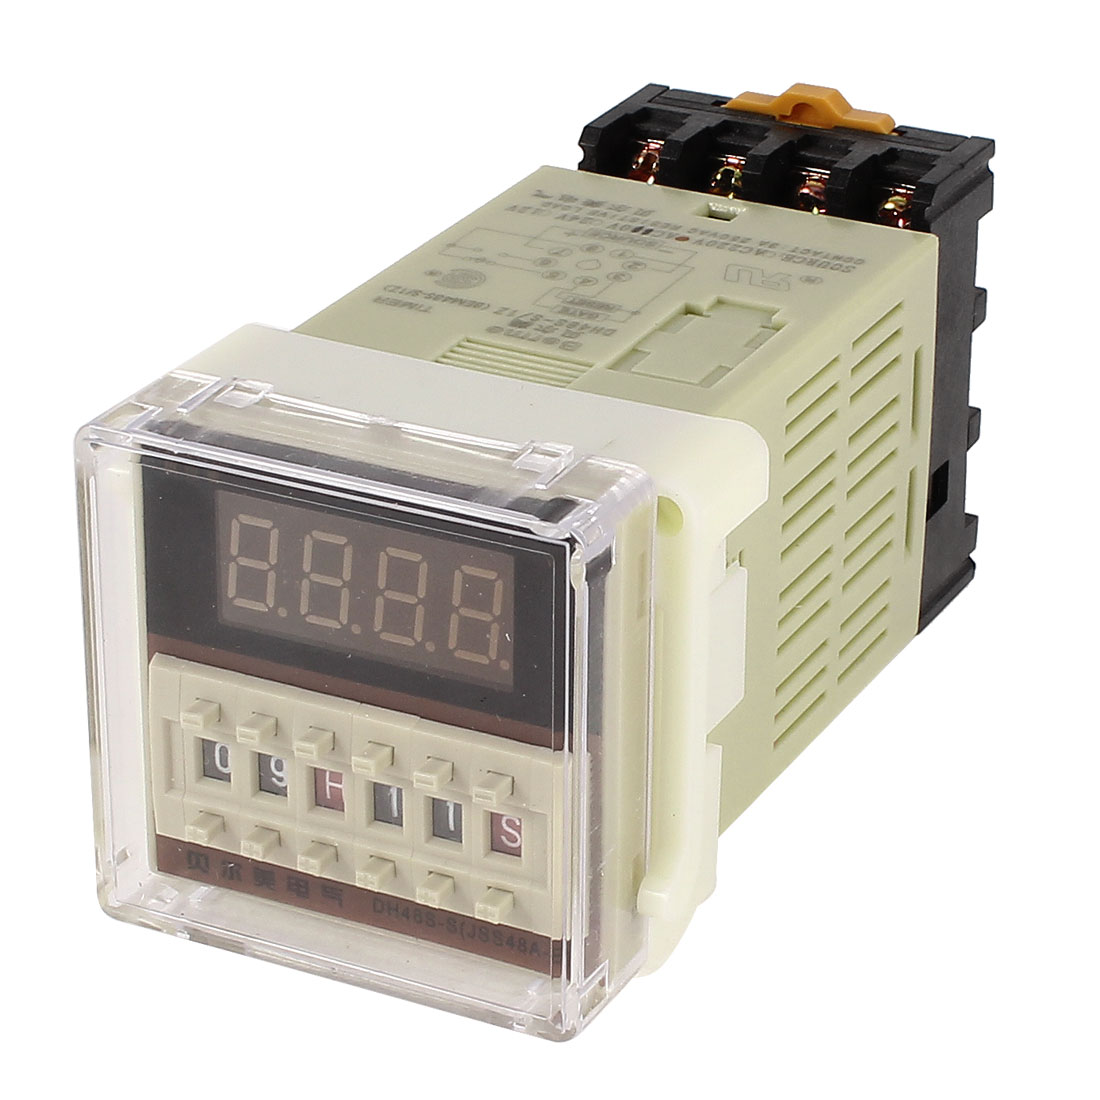 DH48S-S/1Z 0.01s-99h/99m Digital Timer Time Delay Relay 8Pin Terminal AC 110V